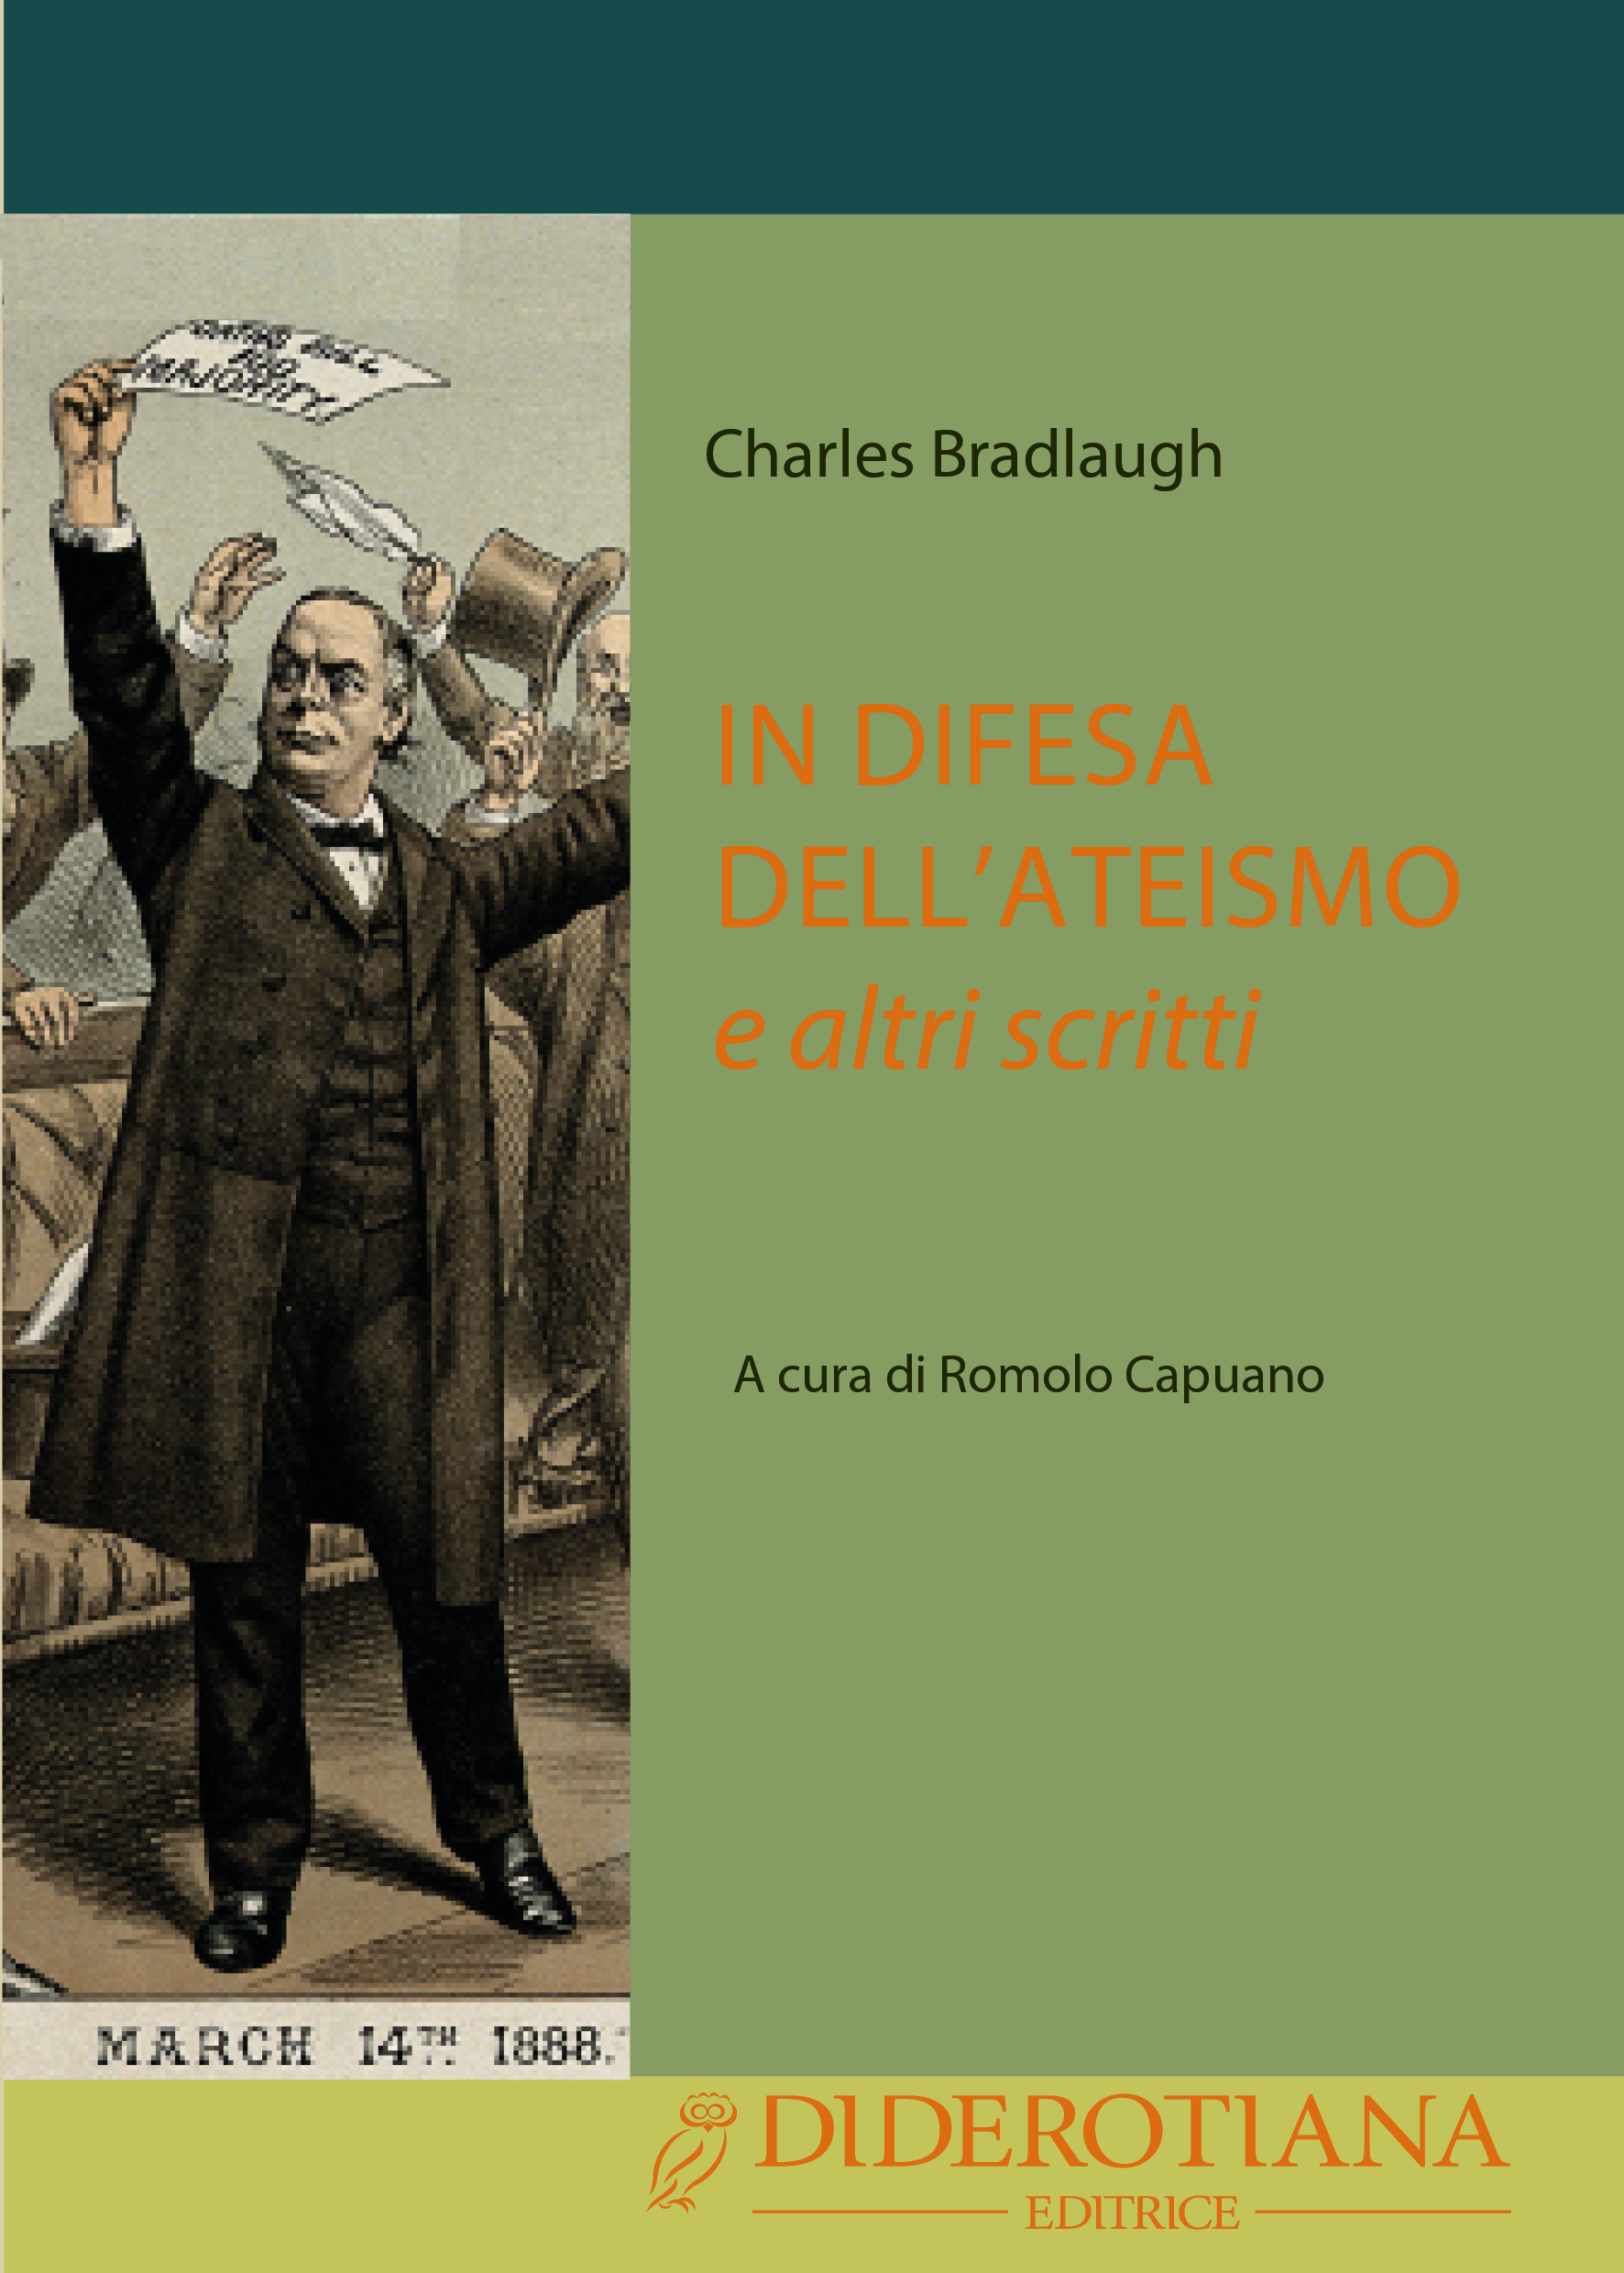 In difesa dellateismo C. Bradlaugh